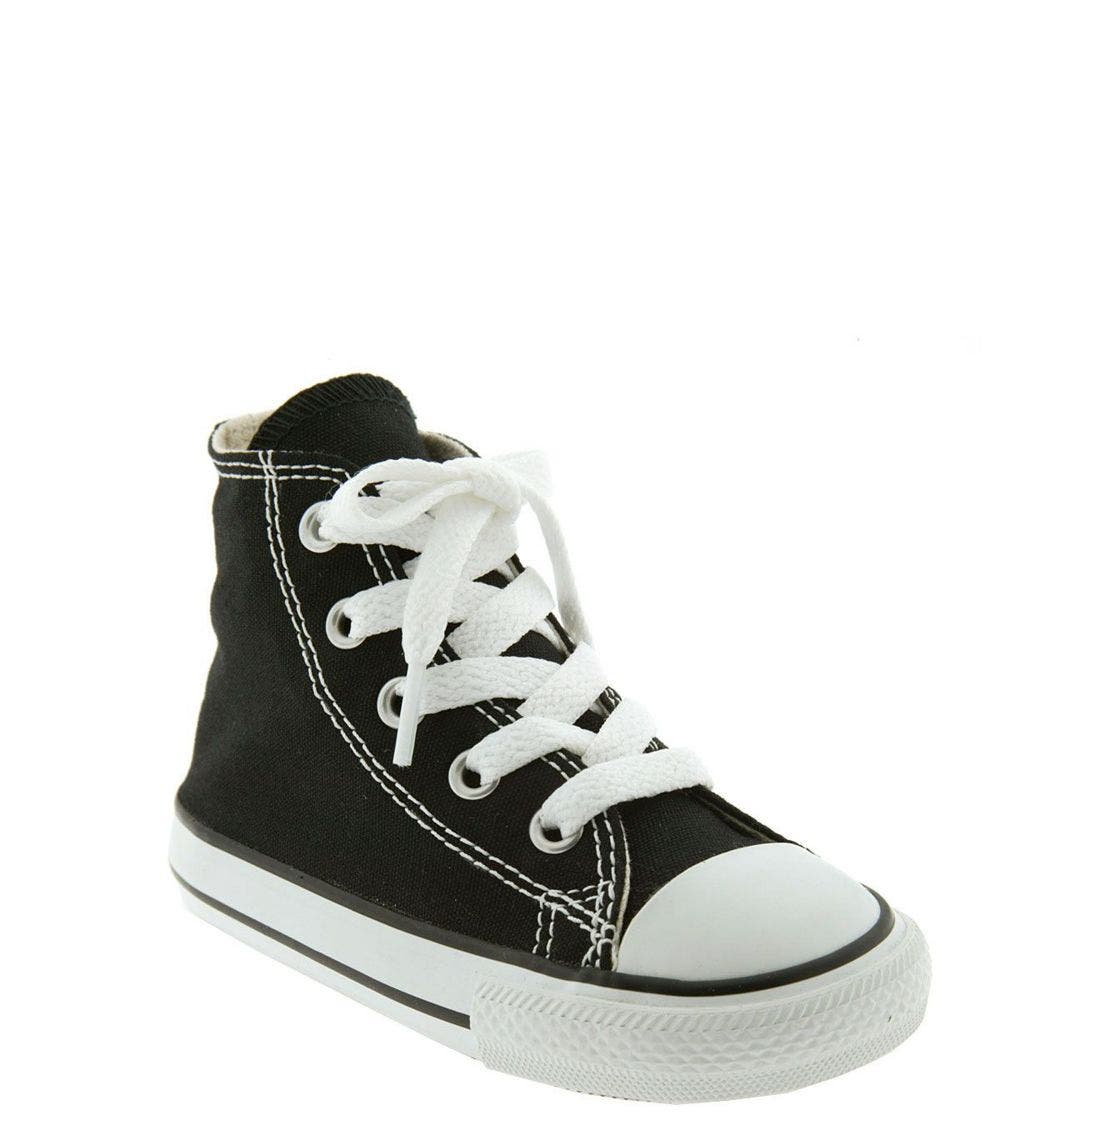 CONVERSE, All Star<sup>®</sup> High Top Sneaker, Main thumbnail 1, color, BLACK